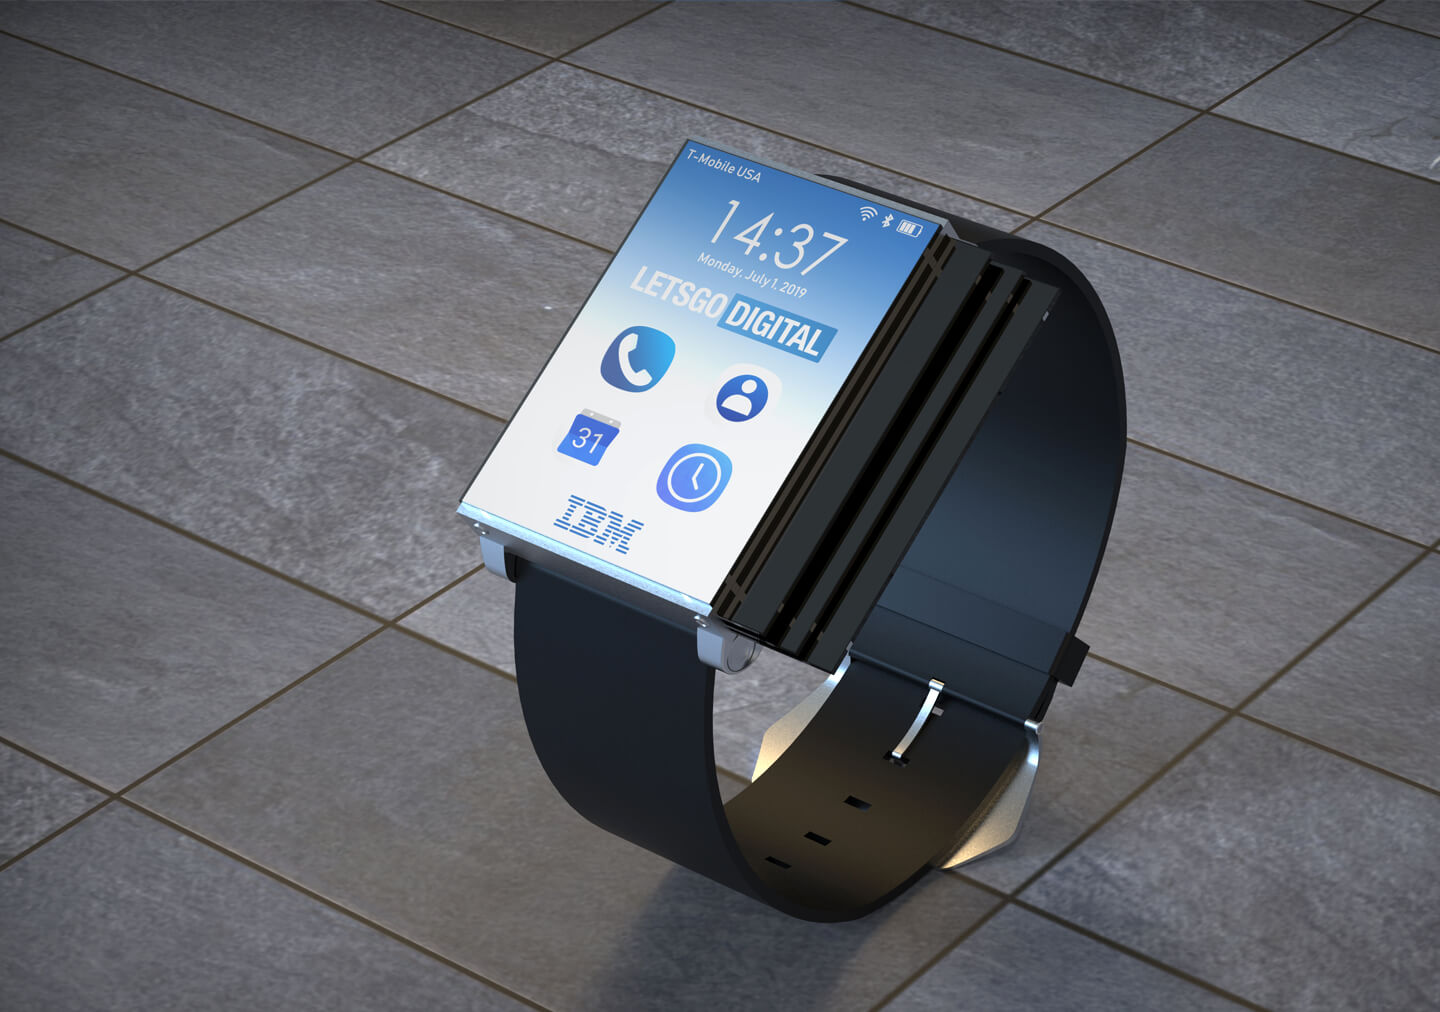 IBM smartwatch